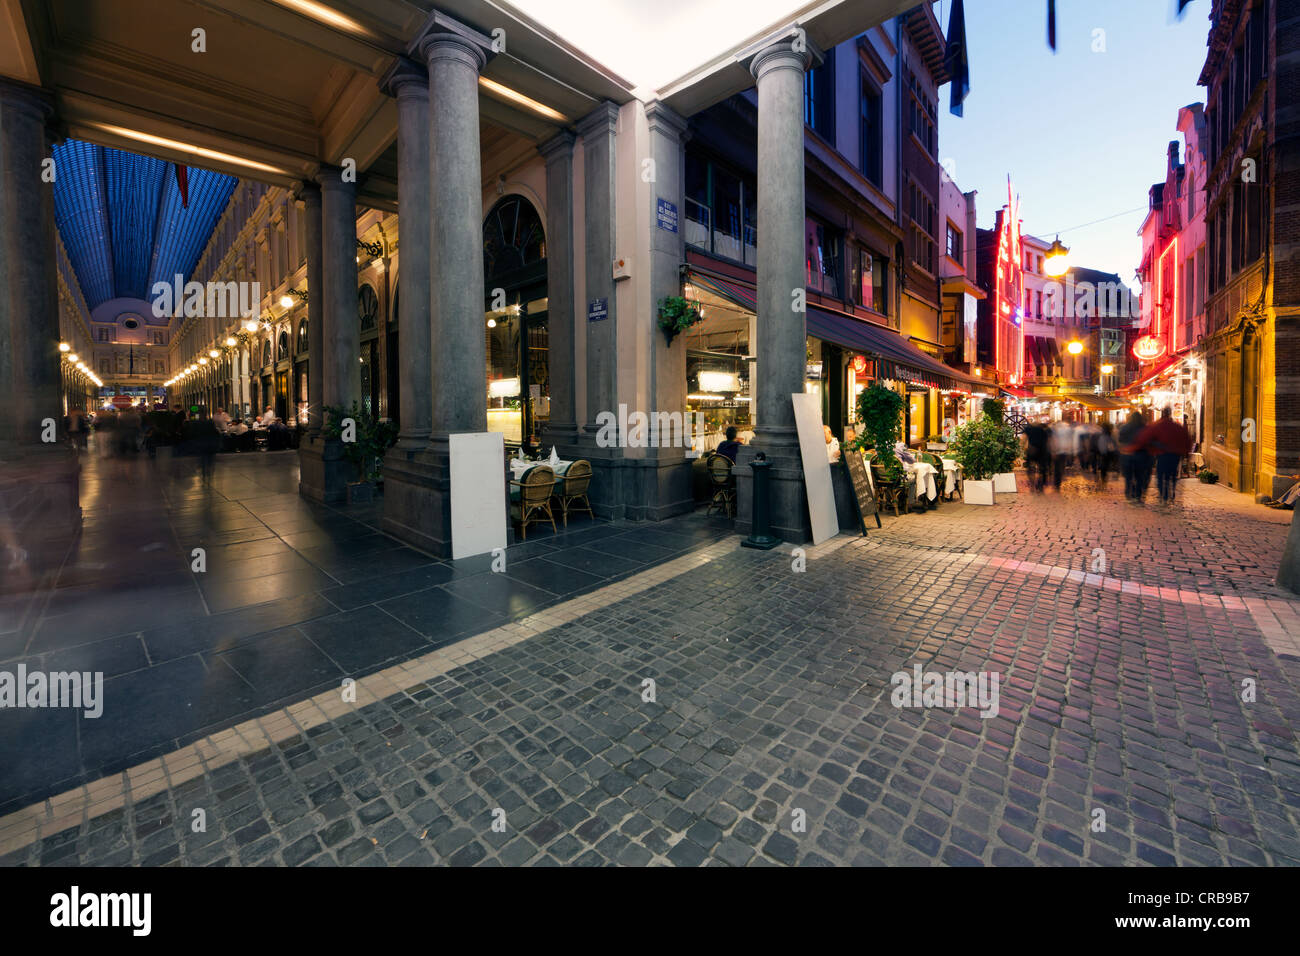 Passers-by in the old town, Beenhouwersstraat, Brussels, Belgium, Europe - Stock Image